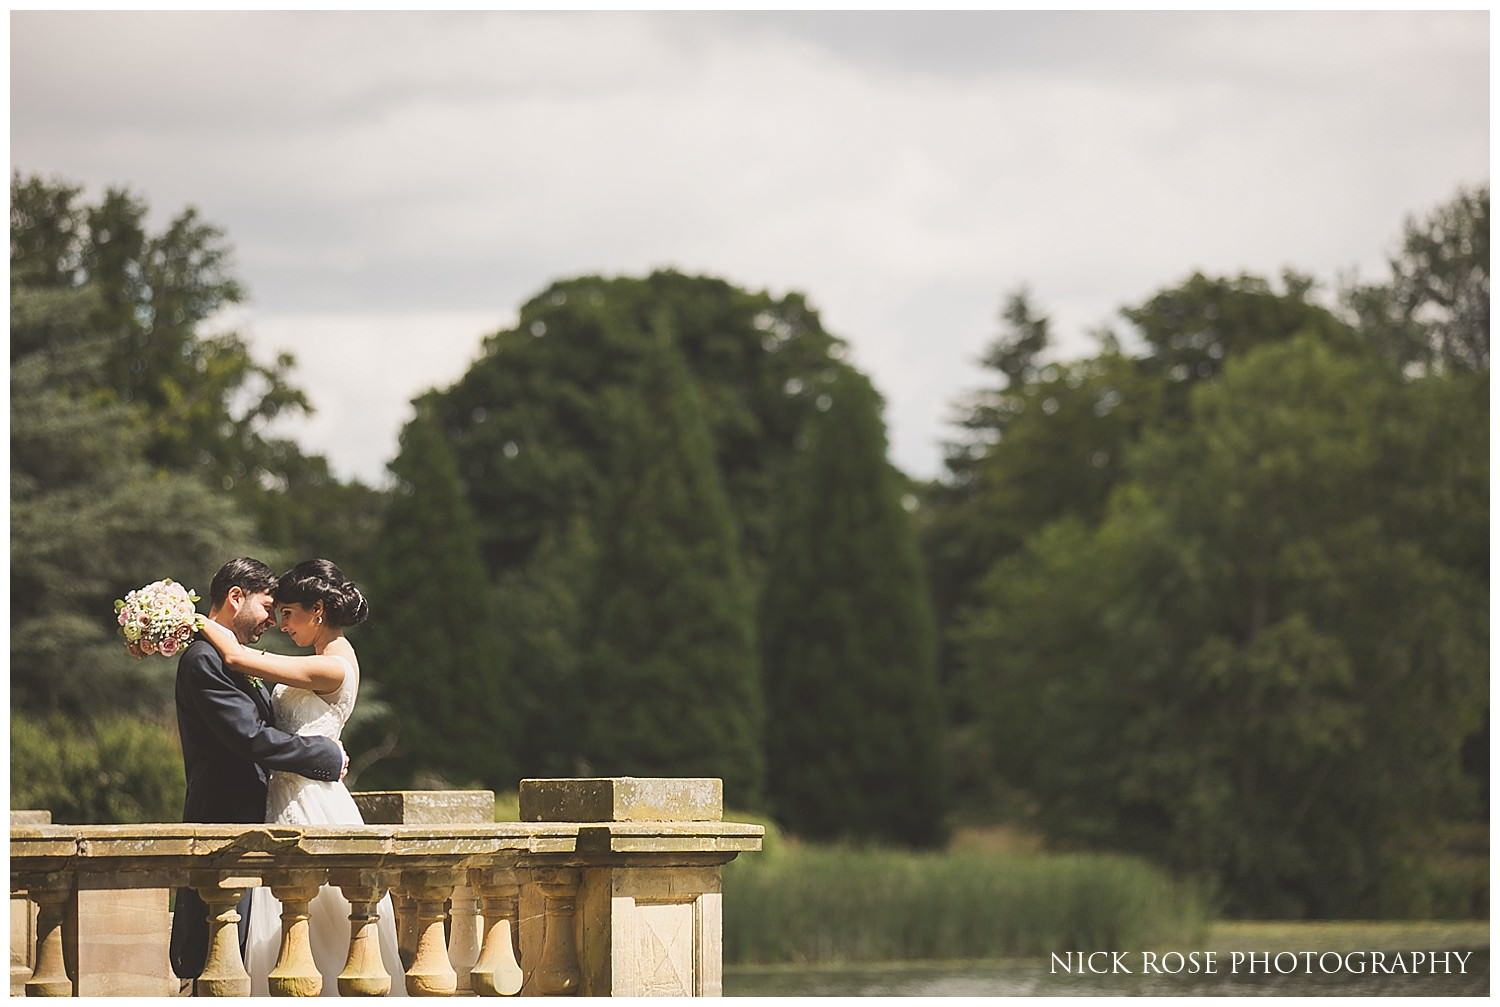 Wedding portrait photograph at the lake in Hever Castle Kent